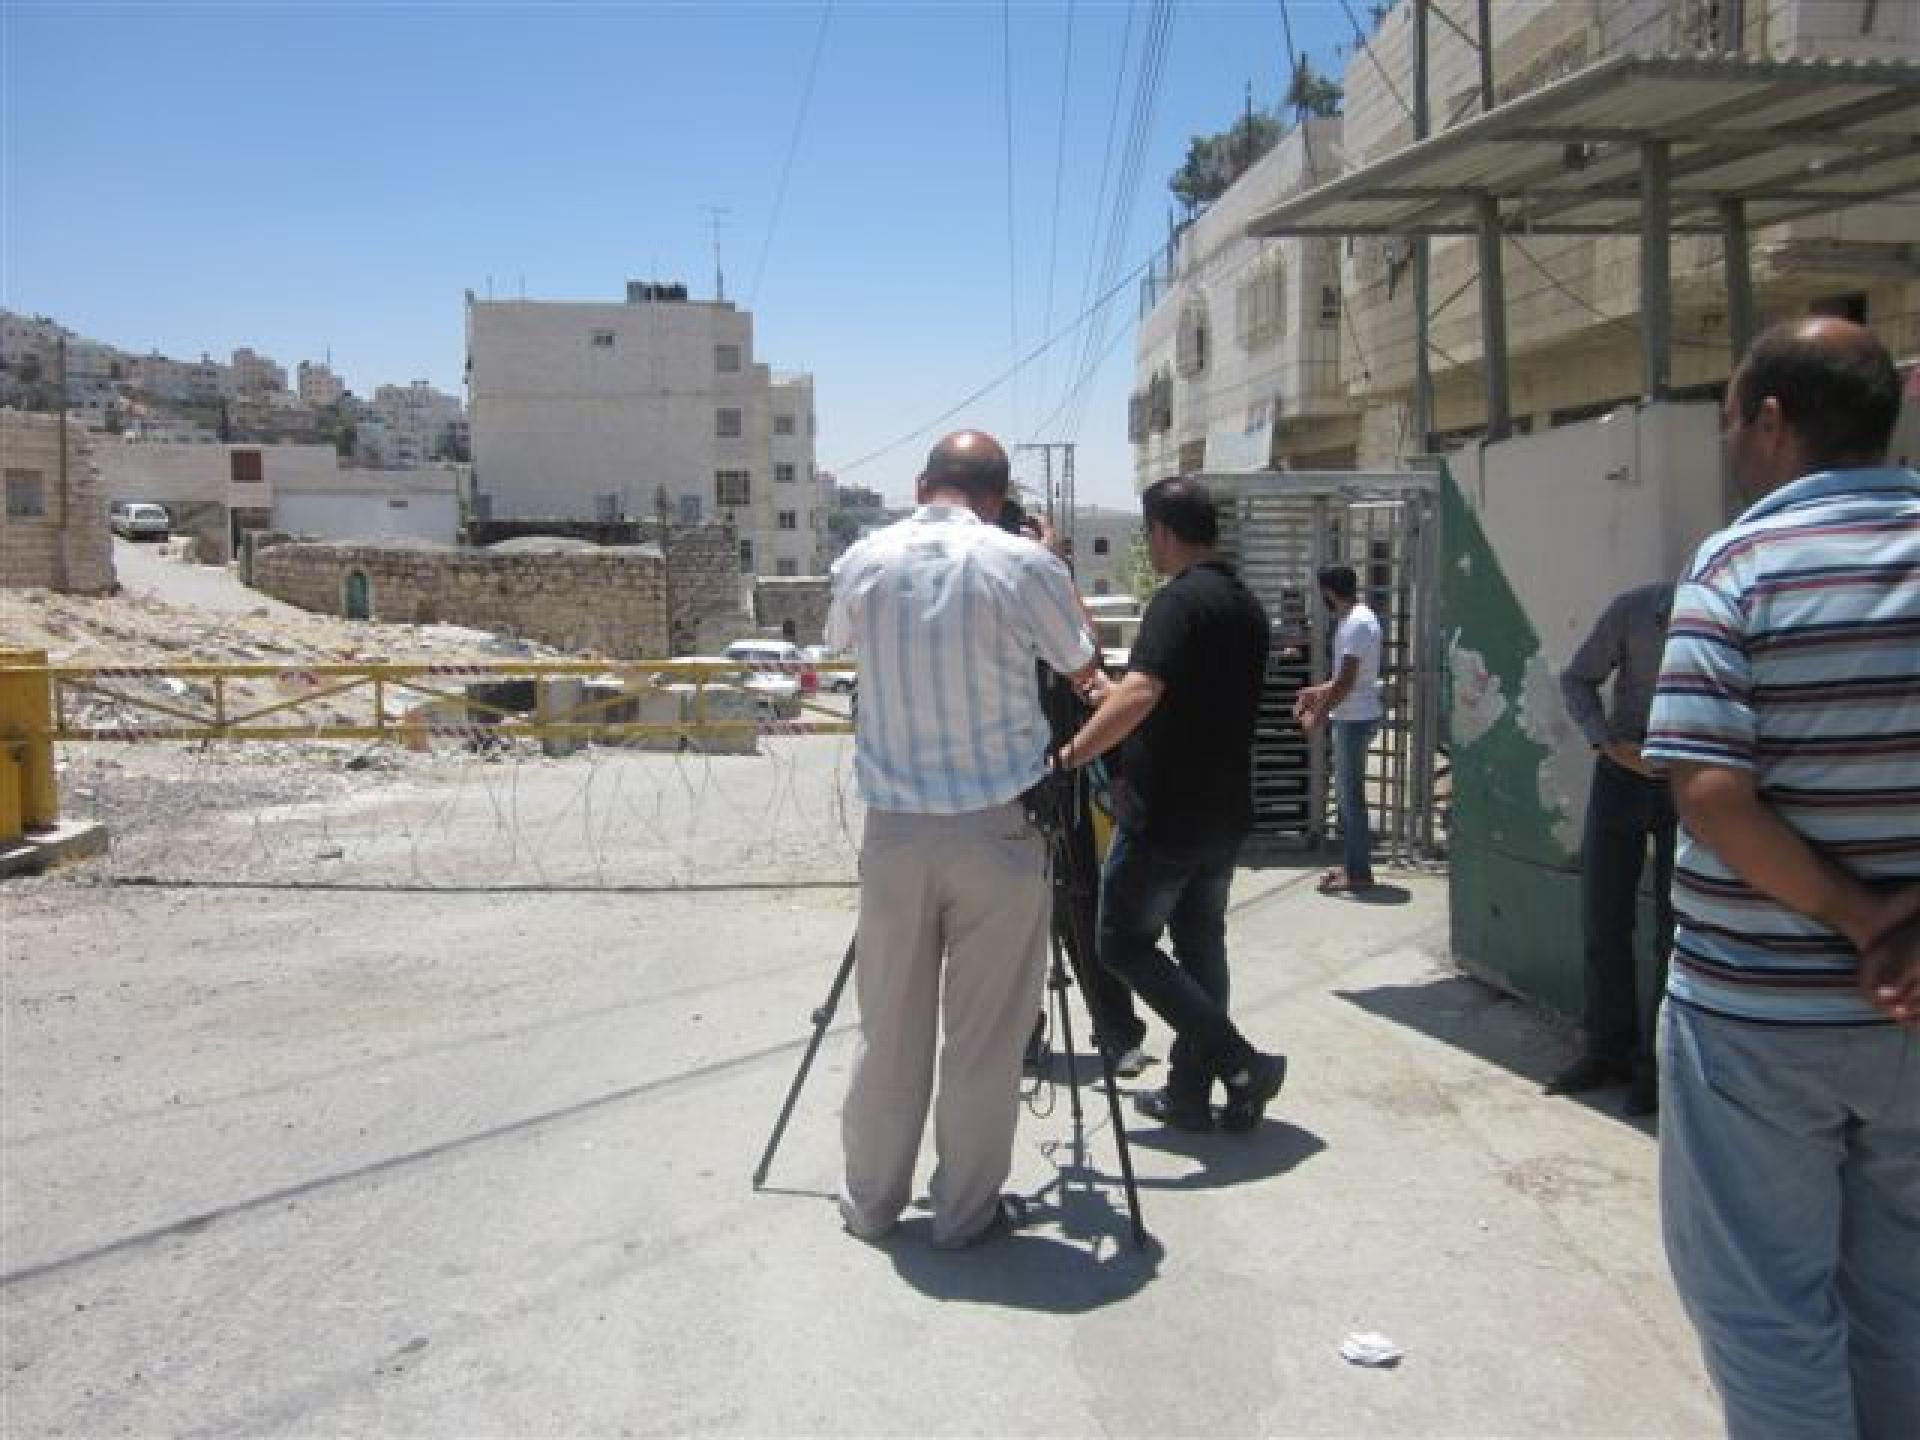 Checkpoint 160, Hebron 17.07.12